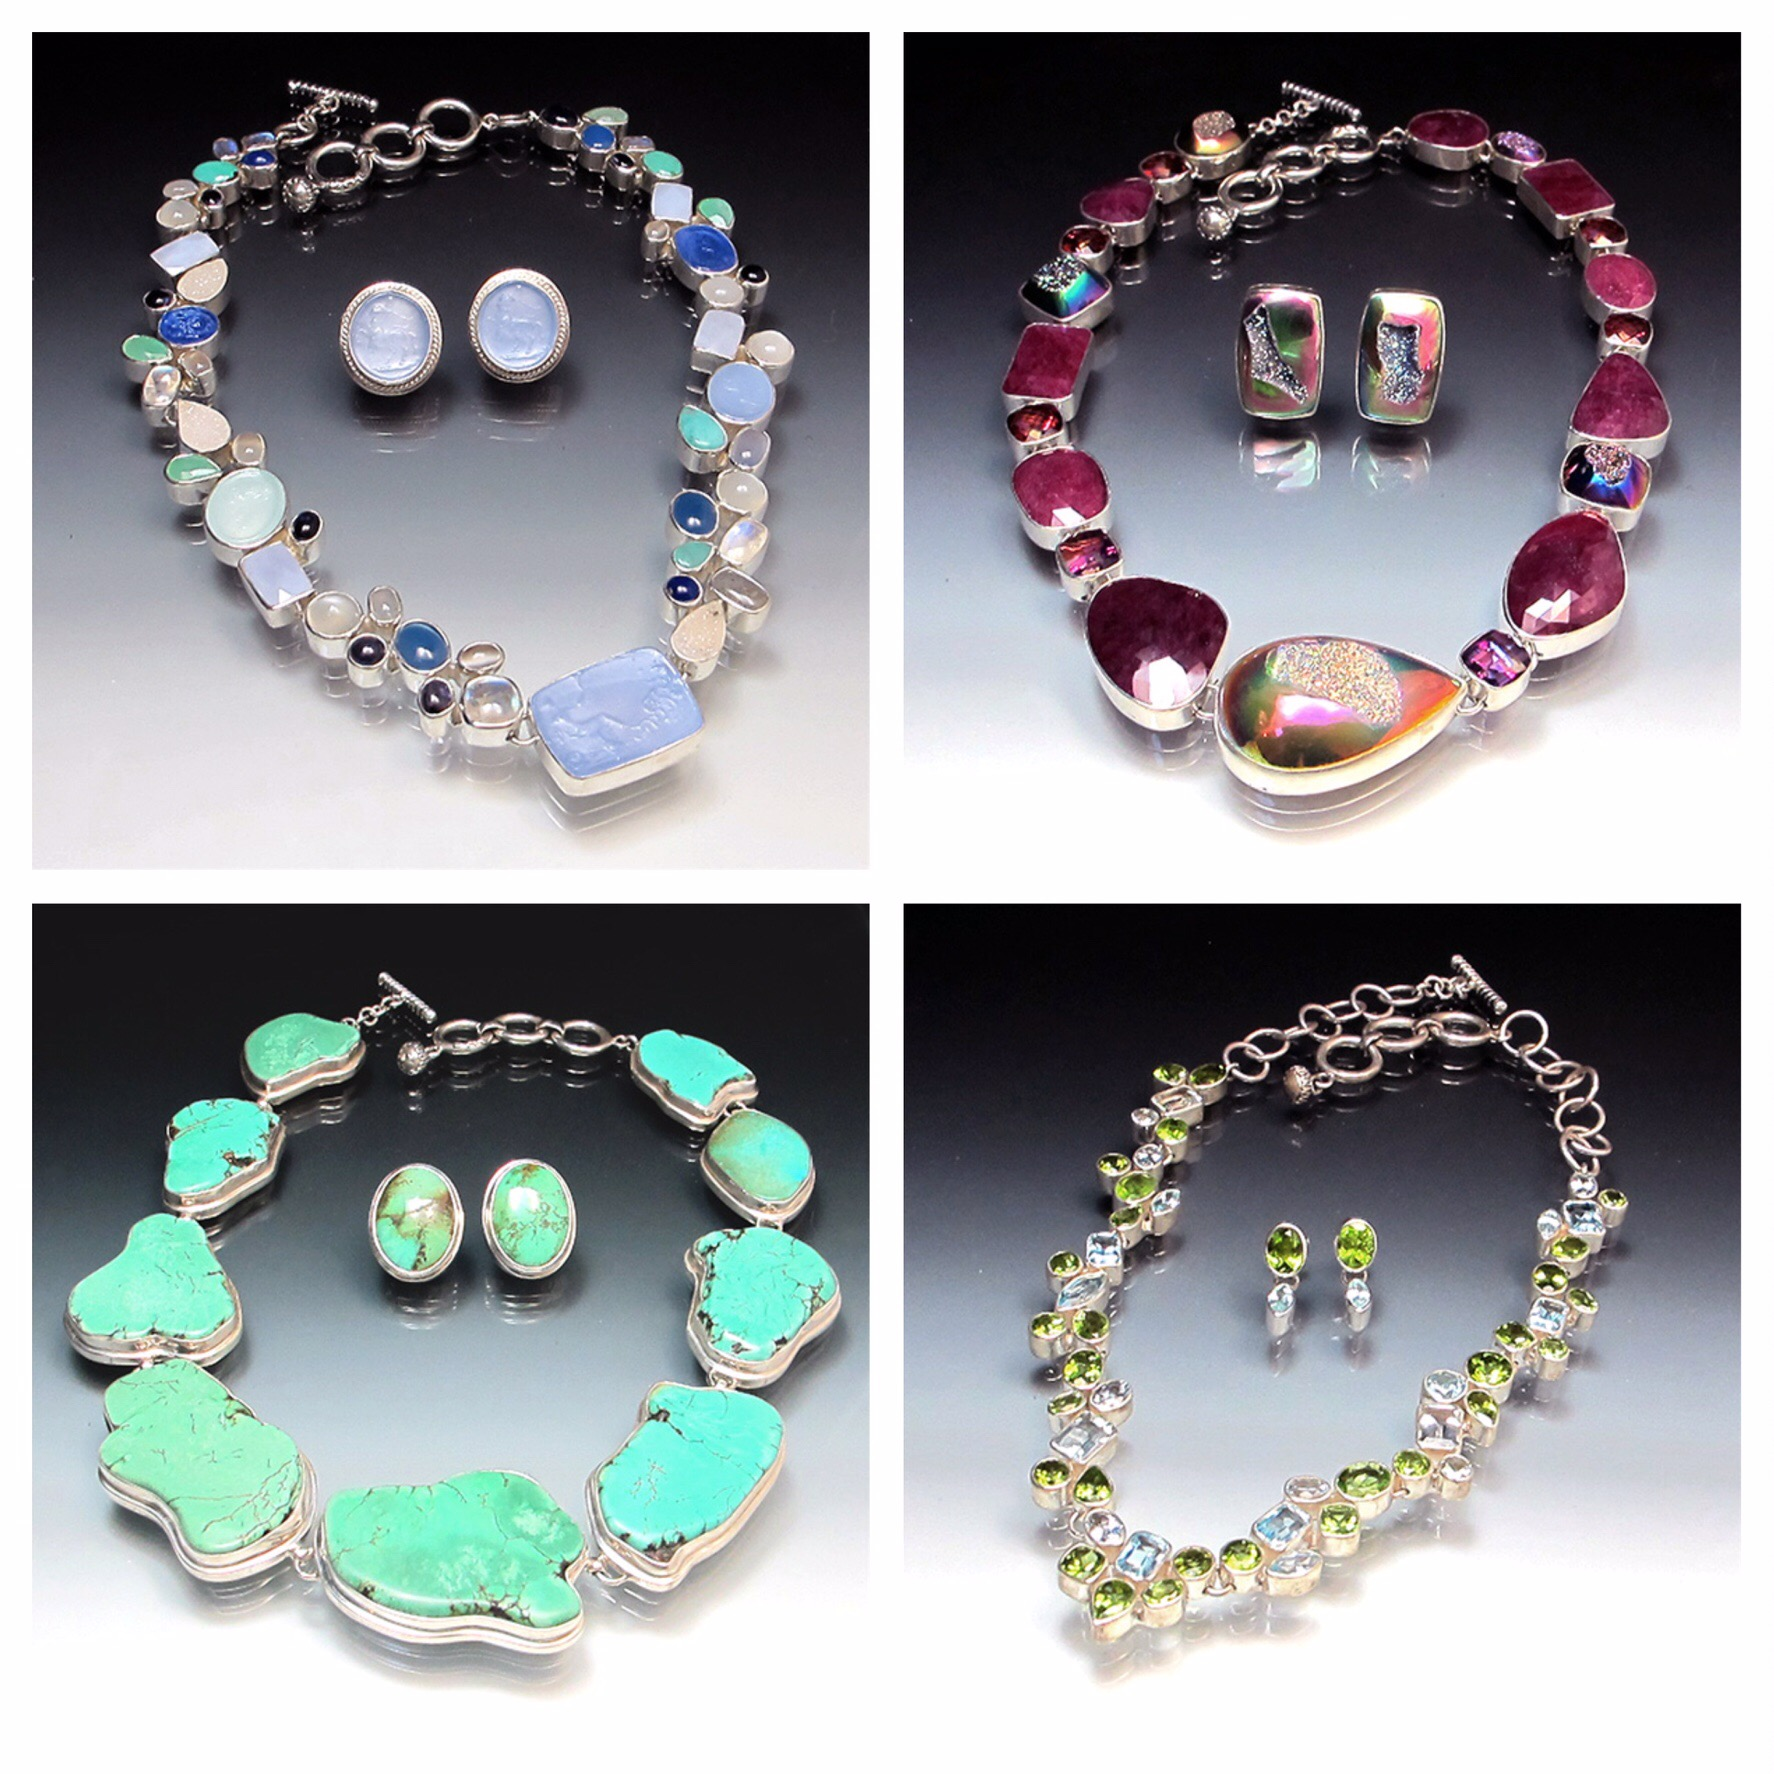 Beautiful handcrafted textured silver and 18K gold necklaces with gemstone accents from Deborah Armstrong & Company